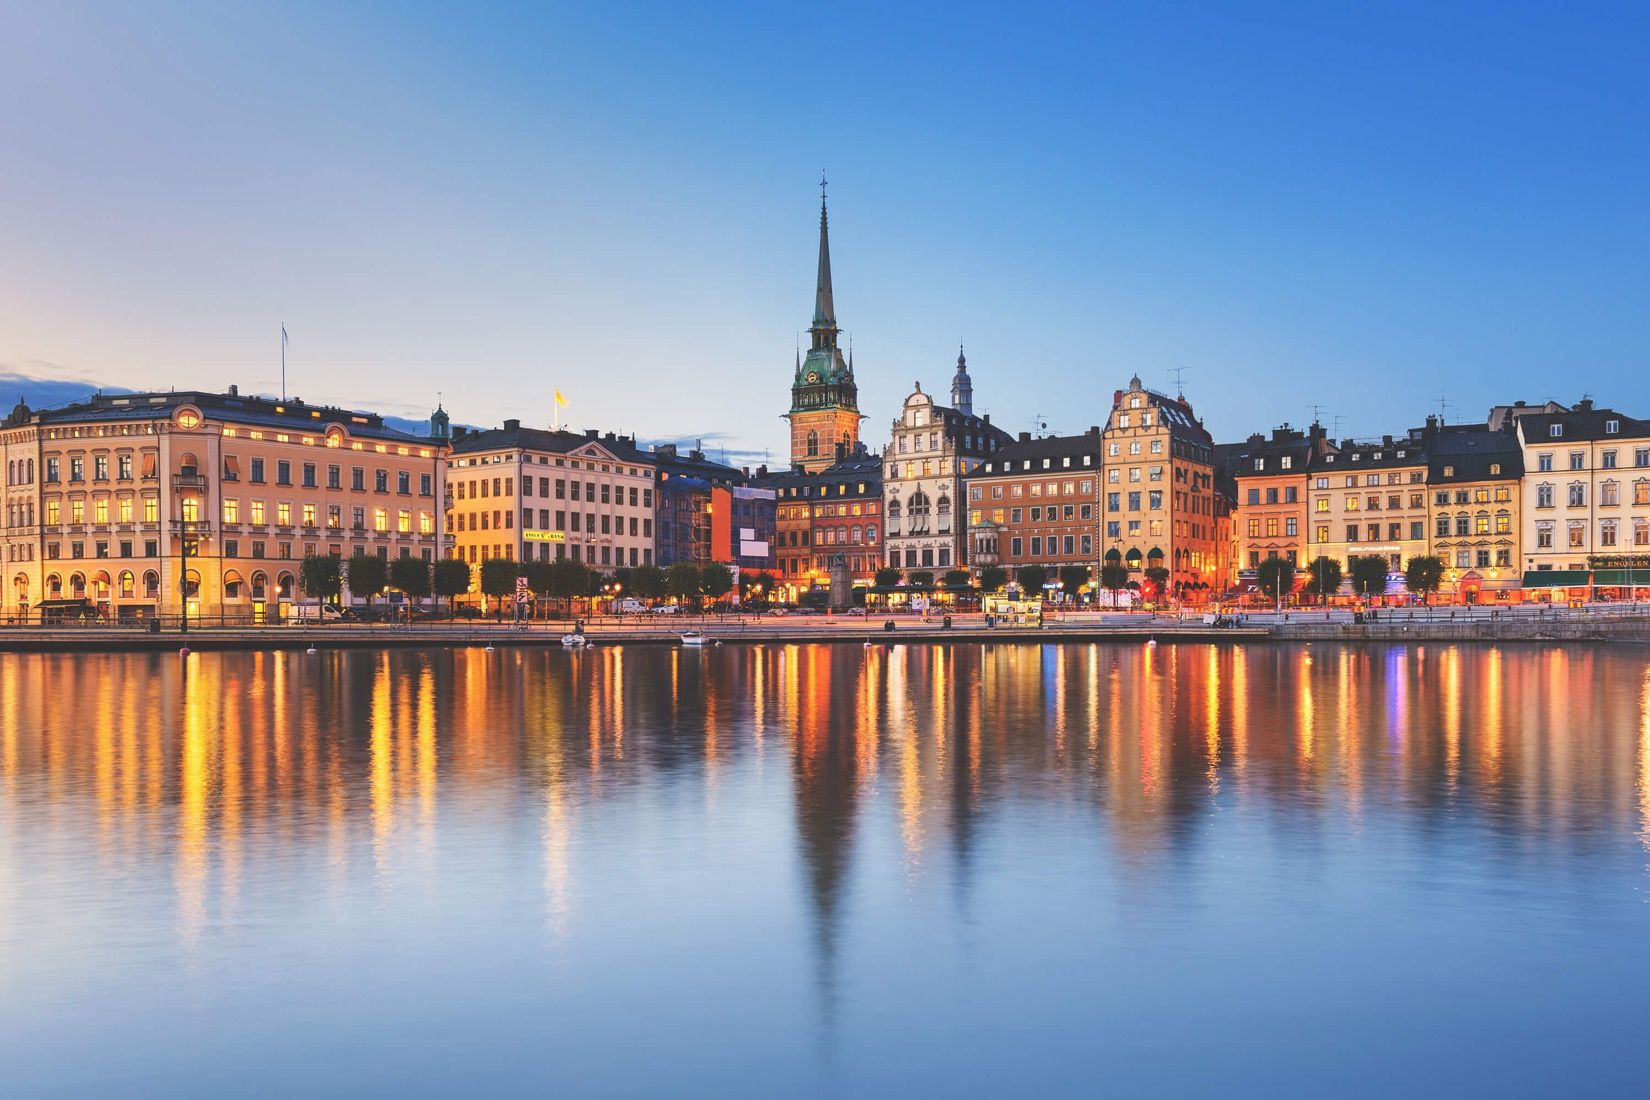 Transport yourself to the beautiful heart of Sweden with this Stockholm City Wallpaper Mural. This mural depicts a stunning dusk image of the capital city in all its glory as its warm lights reflect delicately on the clear water. This wallpaper mural is a perfectly gorgeous feature piece, and would belook right at home in...  Read more »